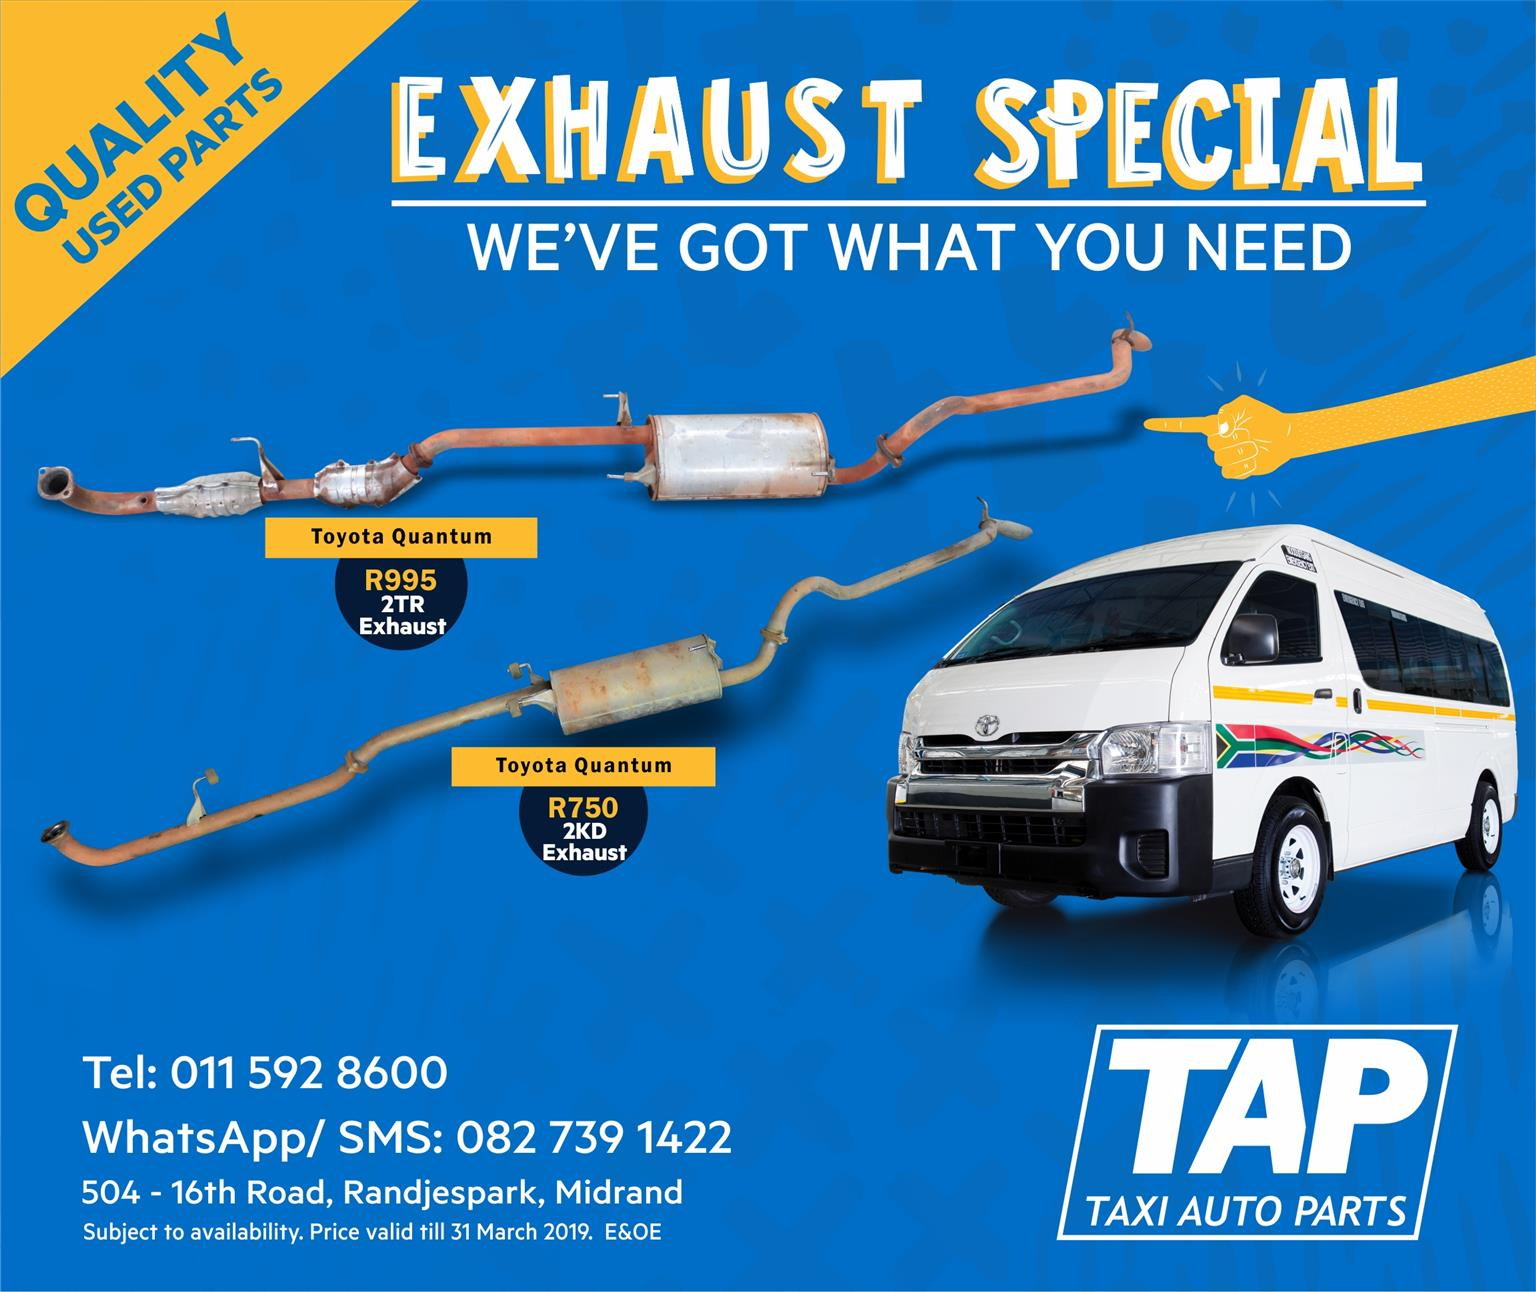 EXHAUST SPECIAL - Toyota Quantum quality used 2TR / 2KD Exhaust - Taxi Auto Parts TAP